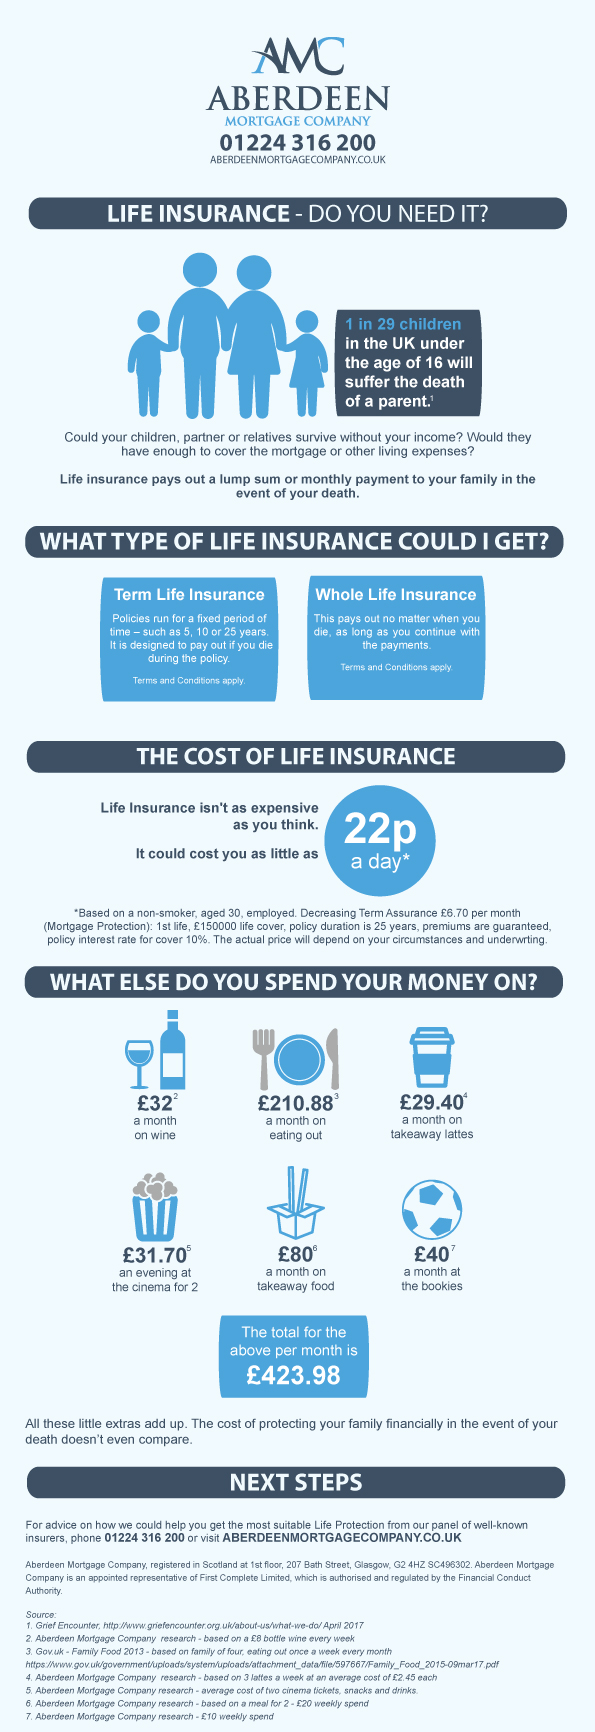 Life Insurance - Do You Need It? | Aberdeen Mortgage Company